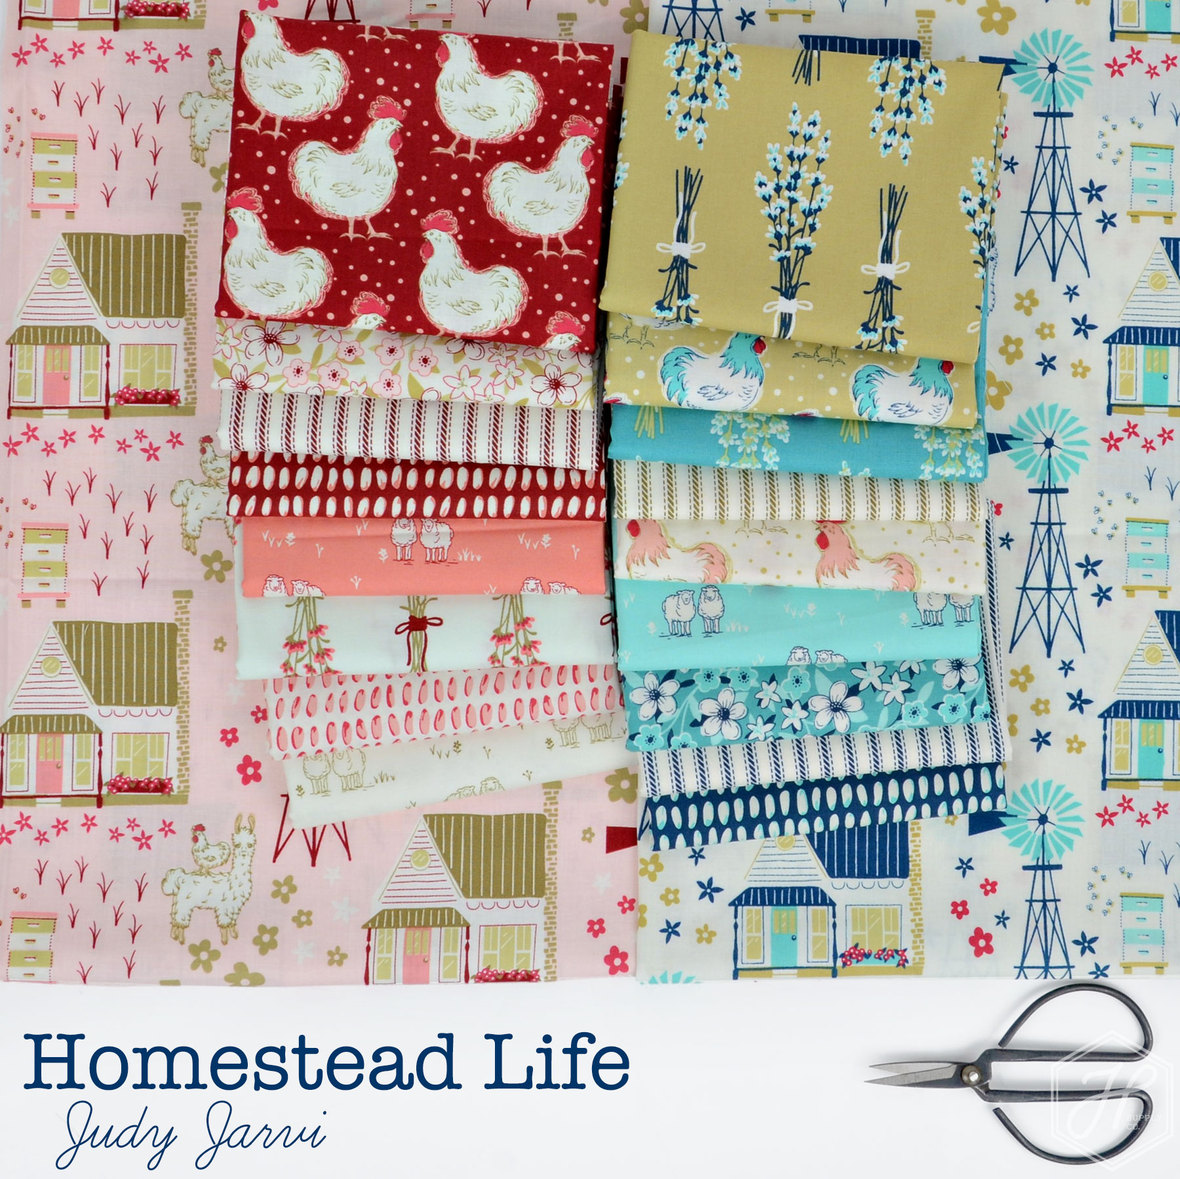 Homestead-Life-Fabric-Poster-Judy-Jarvi-for-Windham-at-Hawthorne-Supply-Co